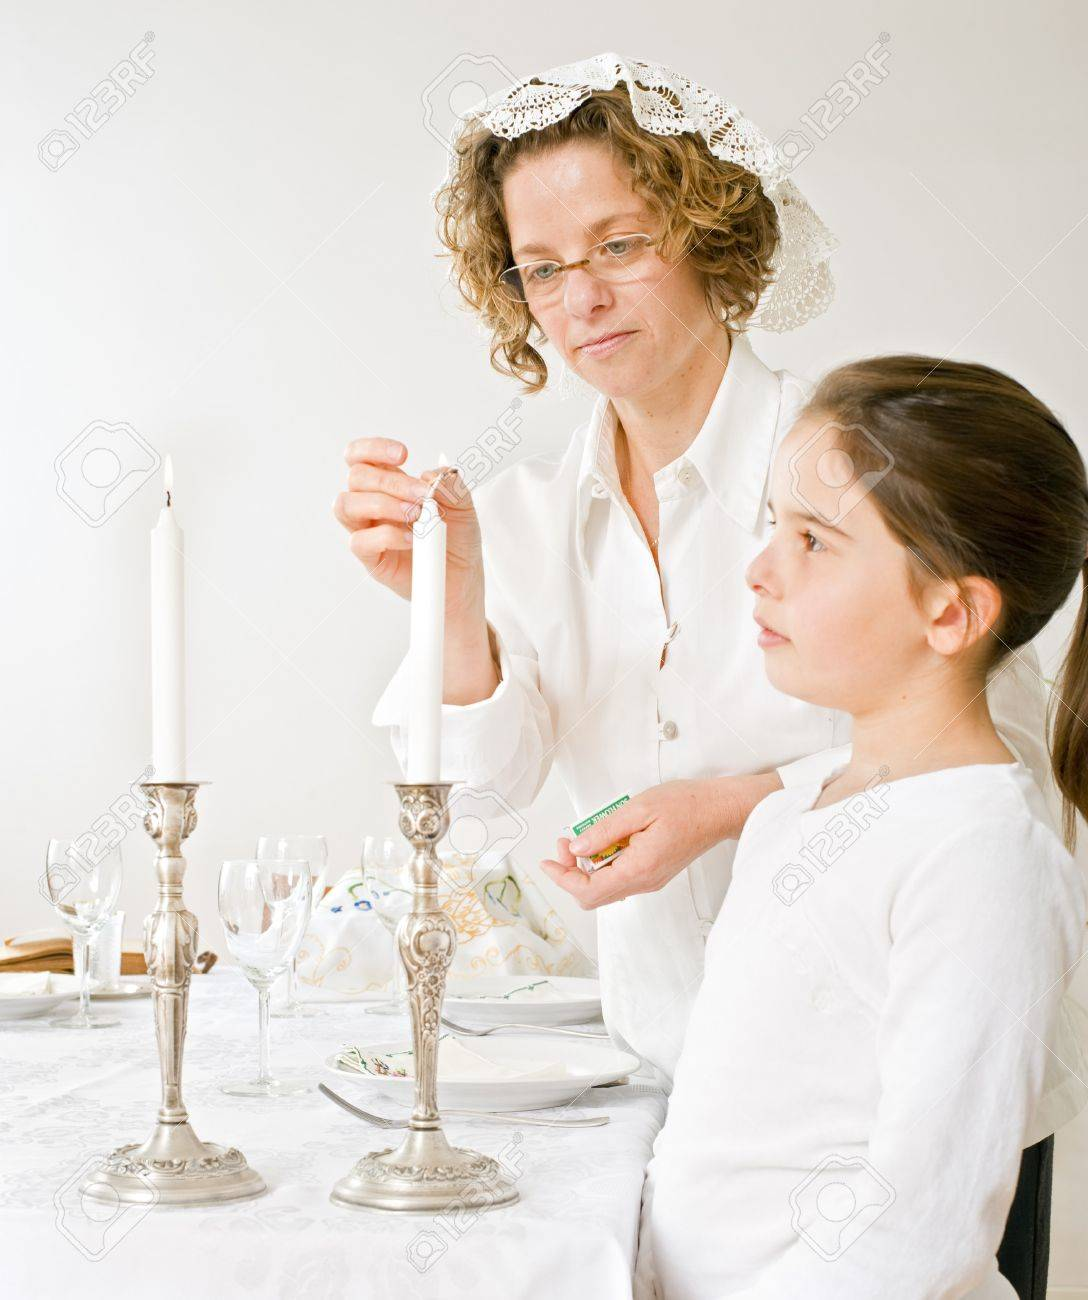 mother and daughter with shabbat candels Stock Photo - 4037871